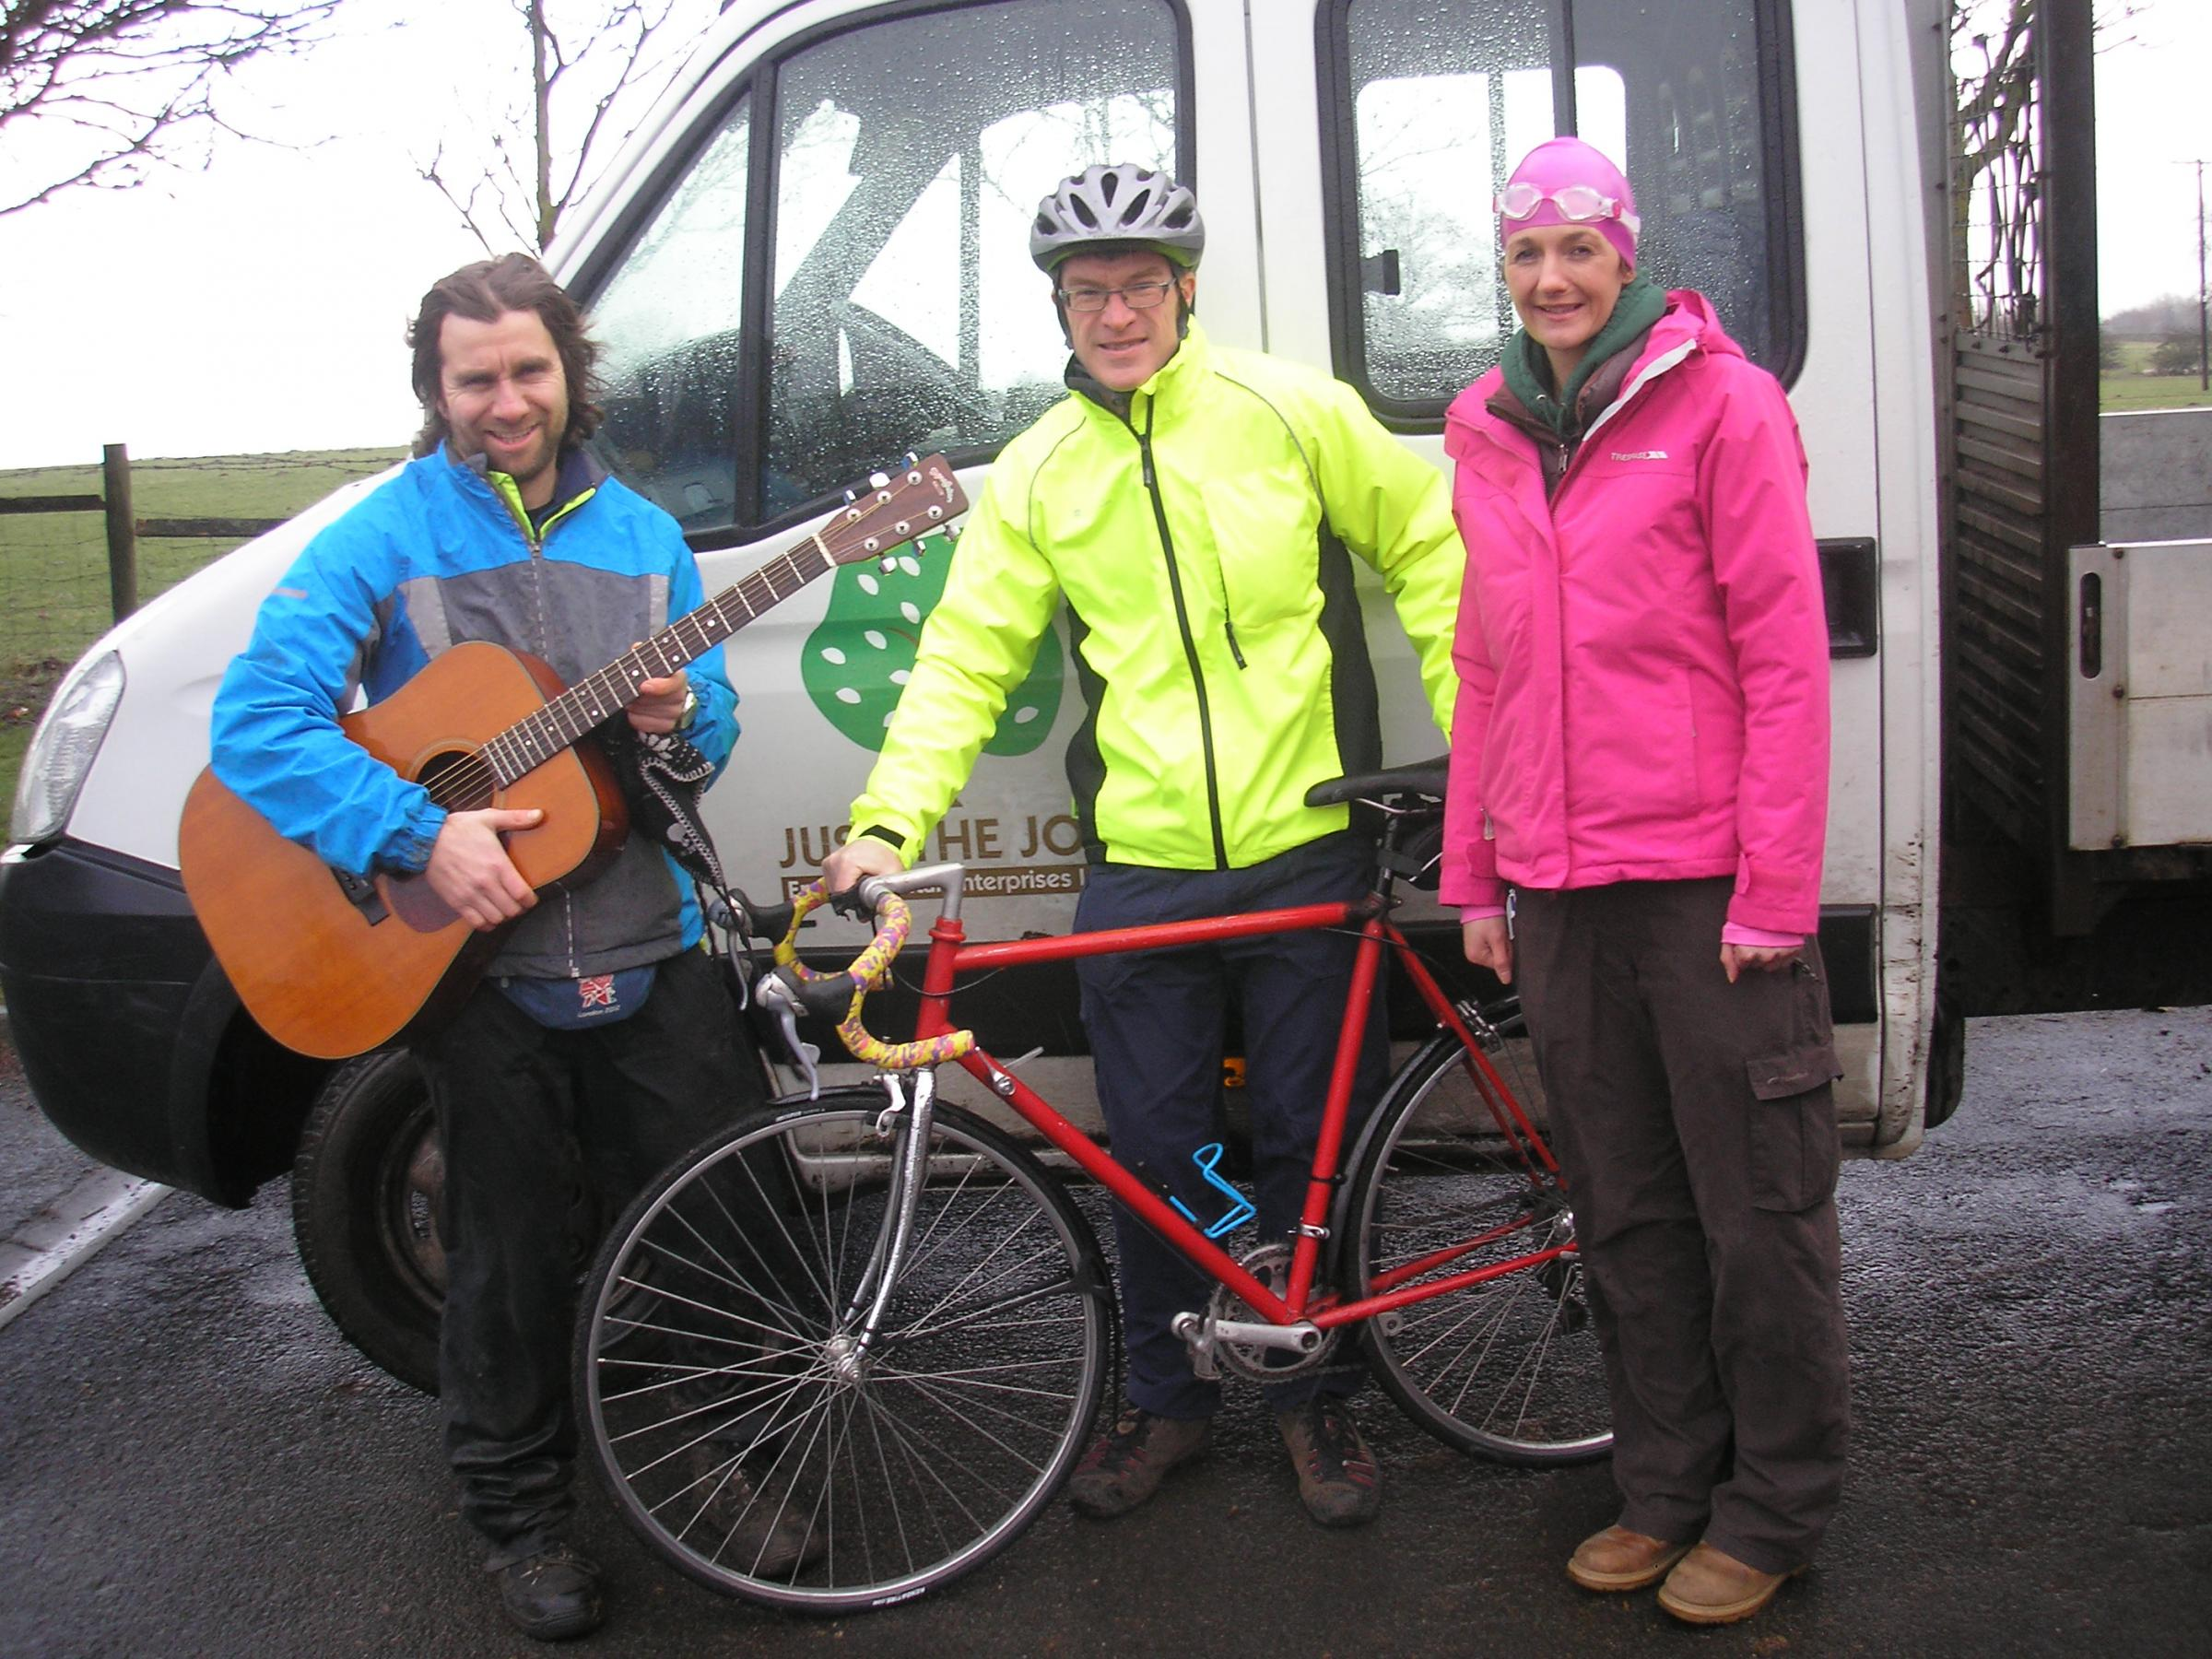 Just-the-Job fundraisers, from left, singer Andy D'Arcy, cyclist Steve Biggs and swimmer Clare Atkinson.